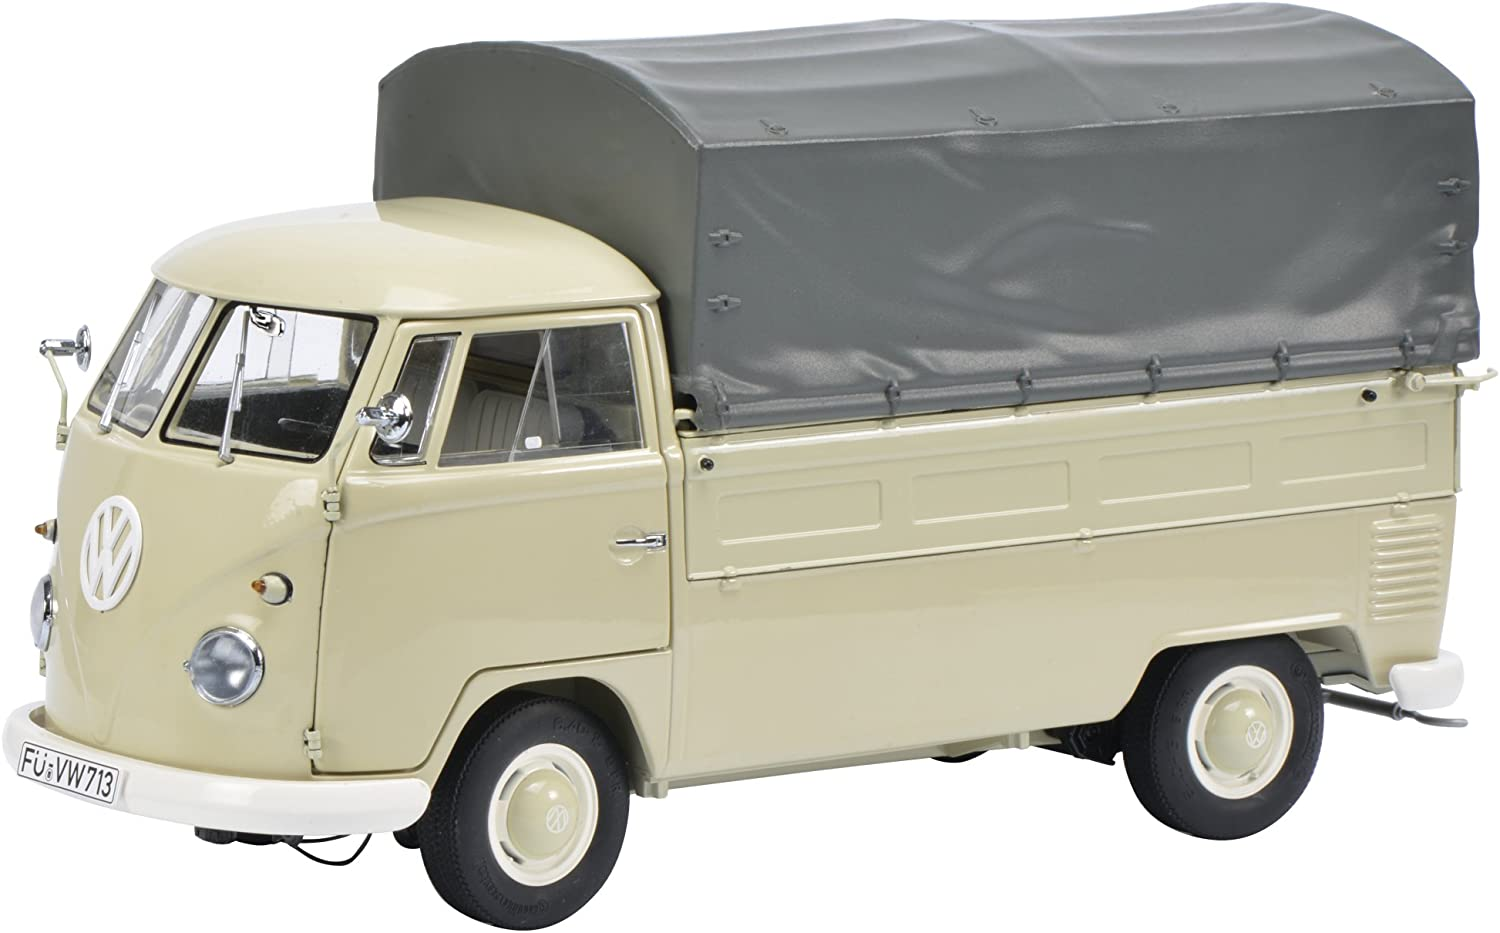 SCHUCO VW T1a Bus with Brezelkäfer body be 1:18 450016300 SALE